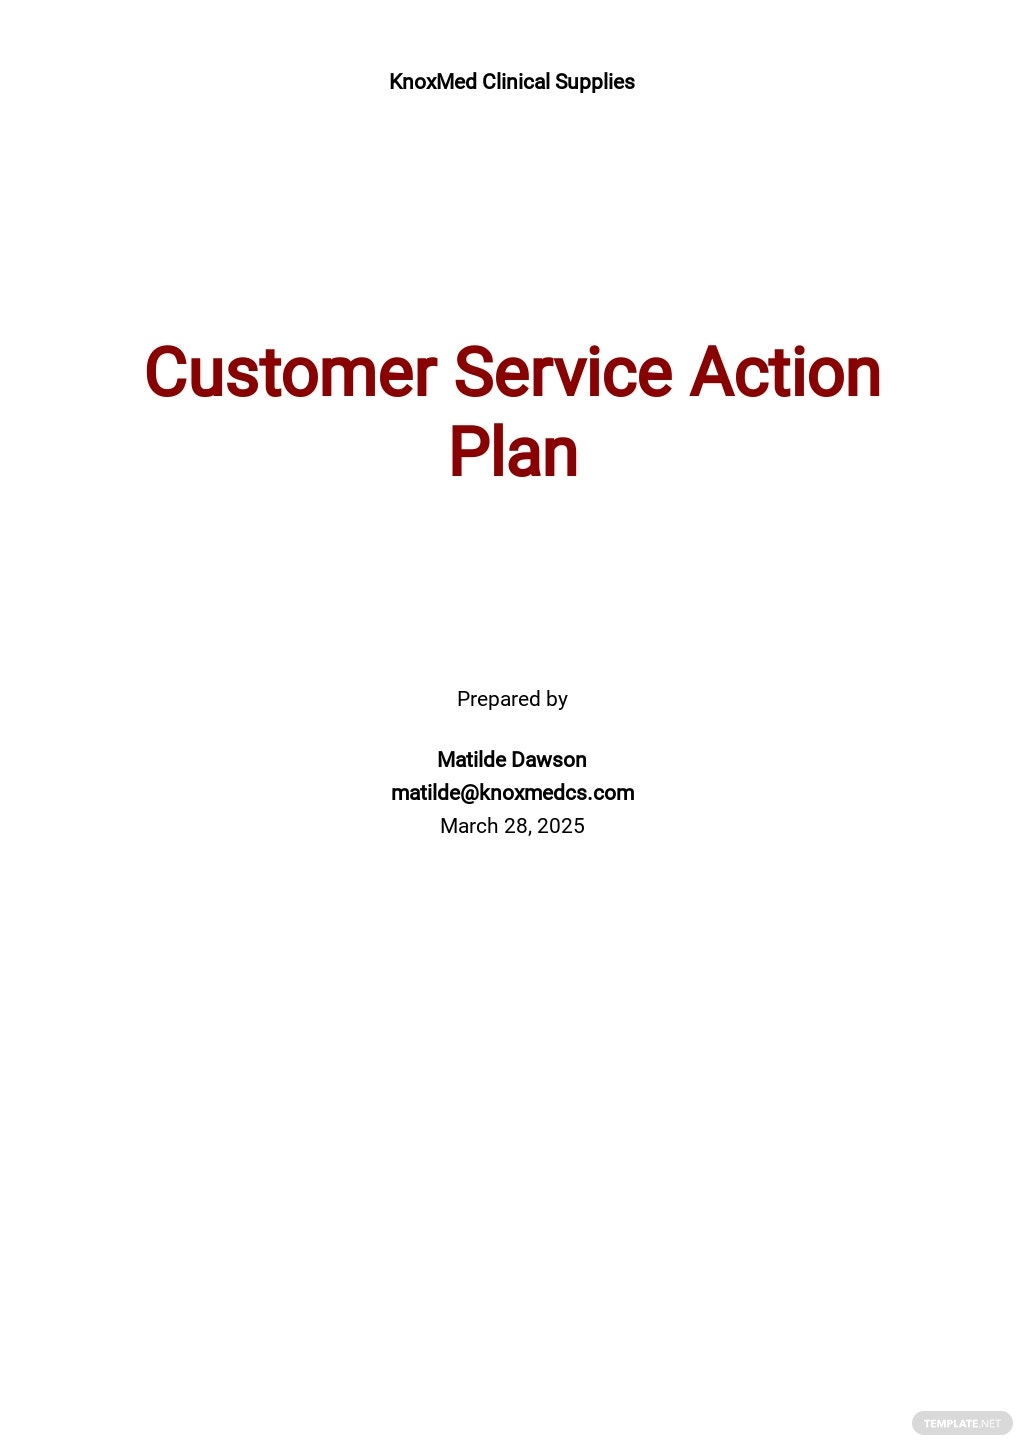 Customer Service Action Plan Template